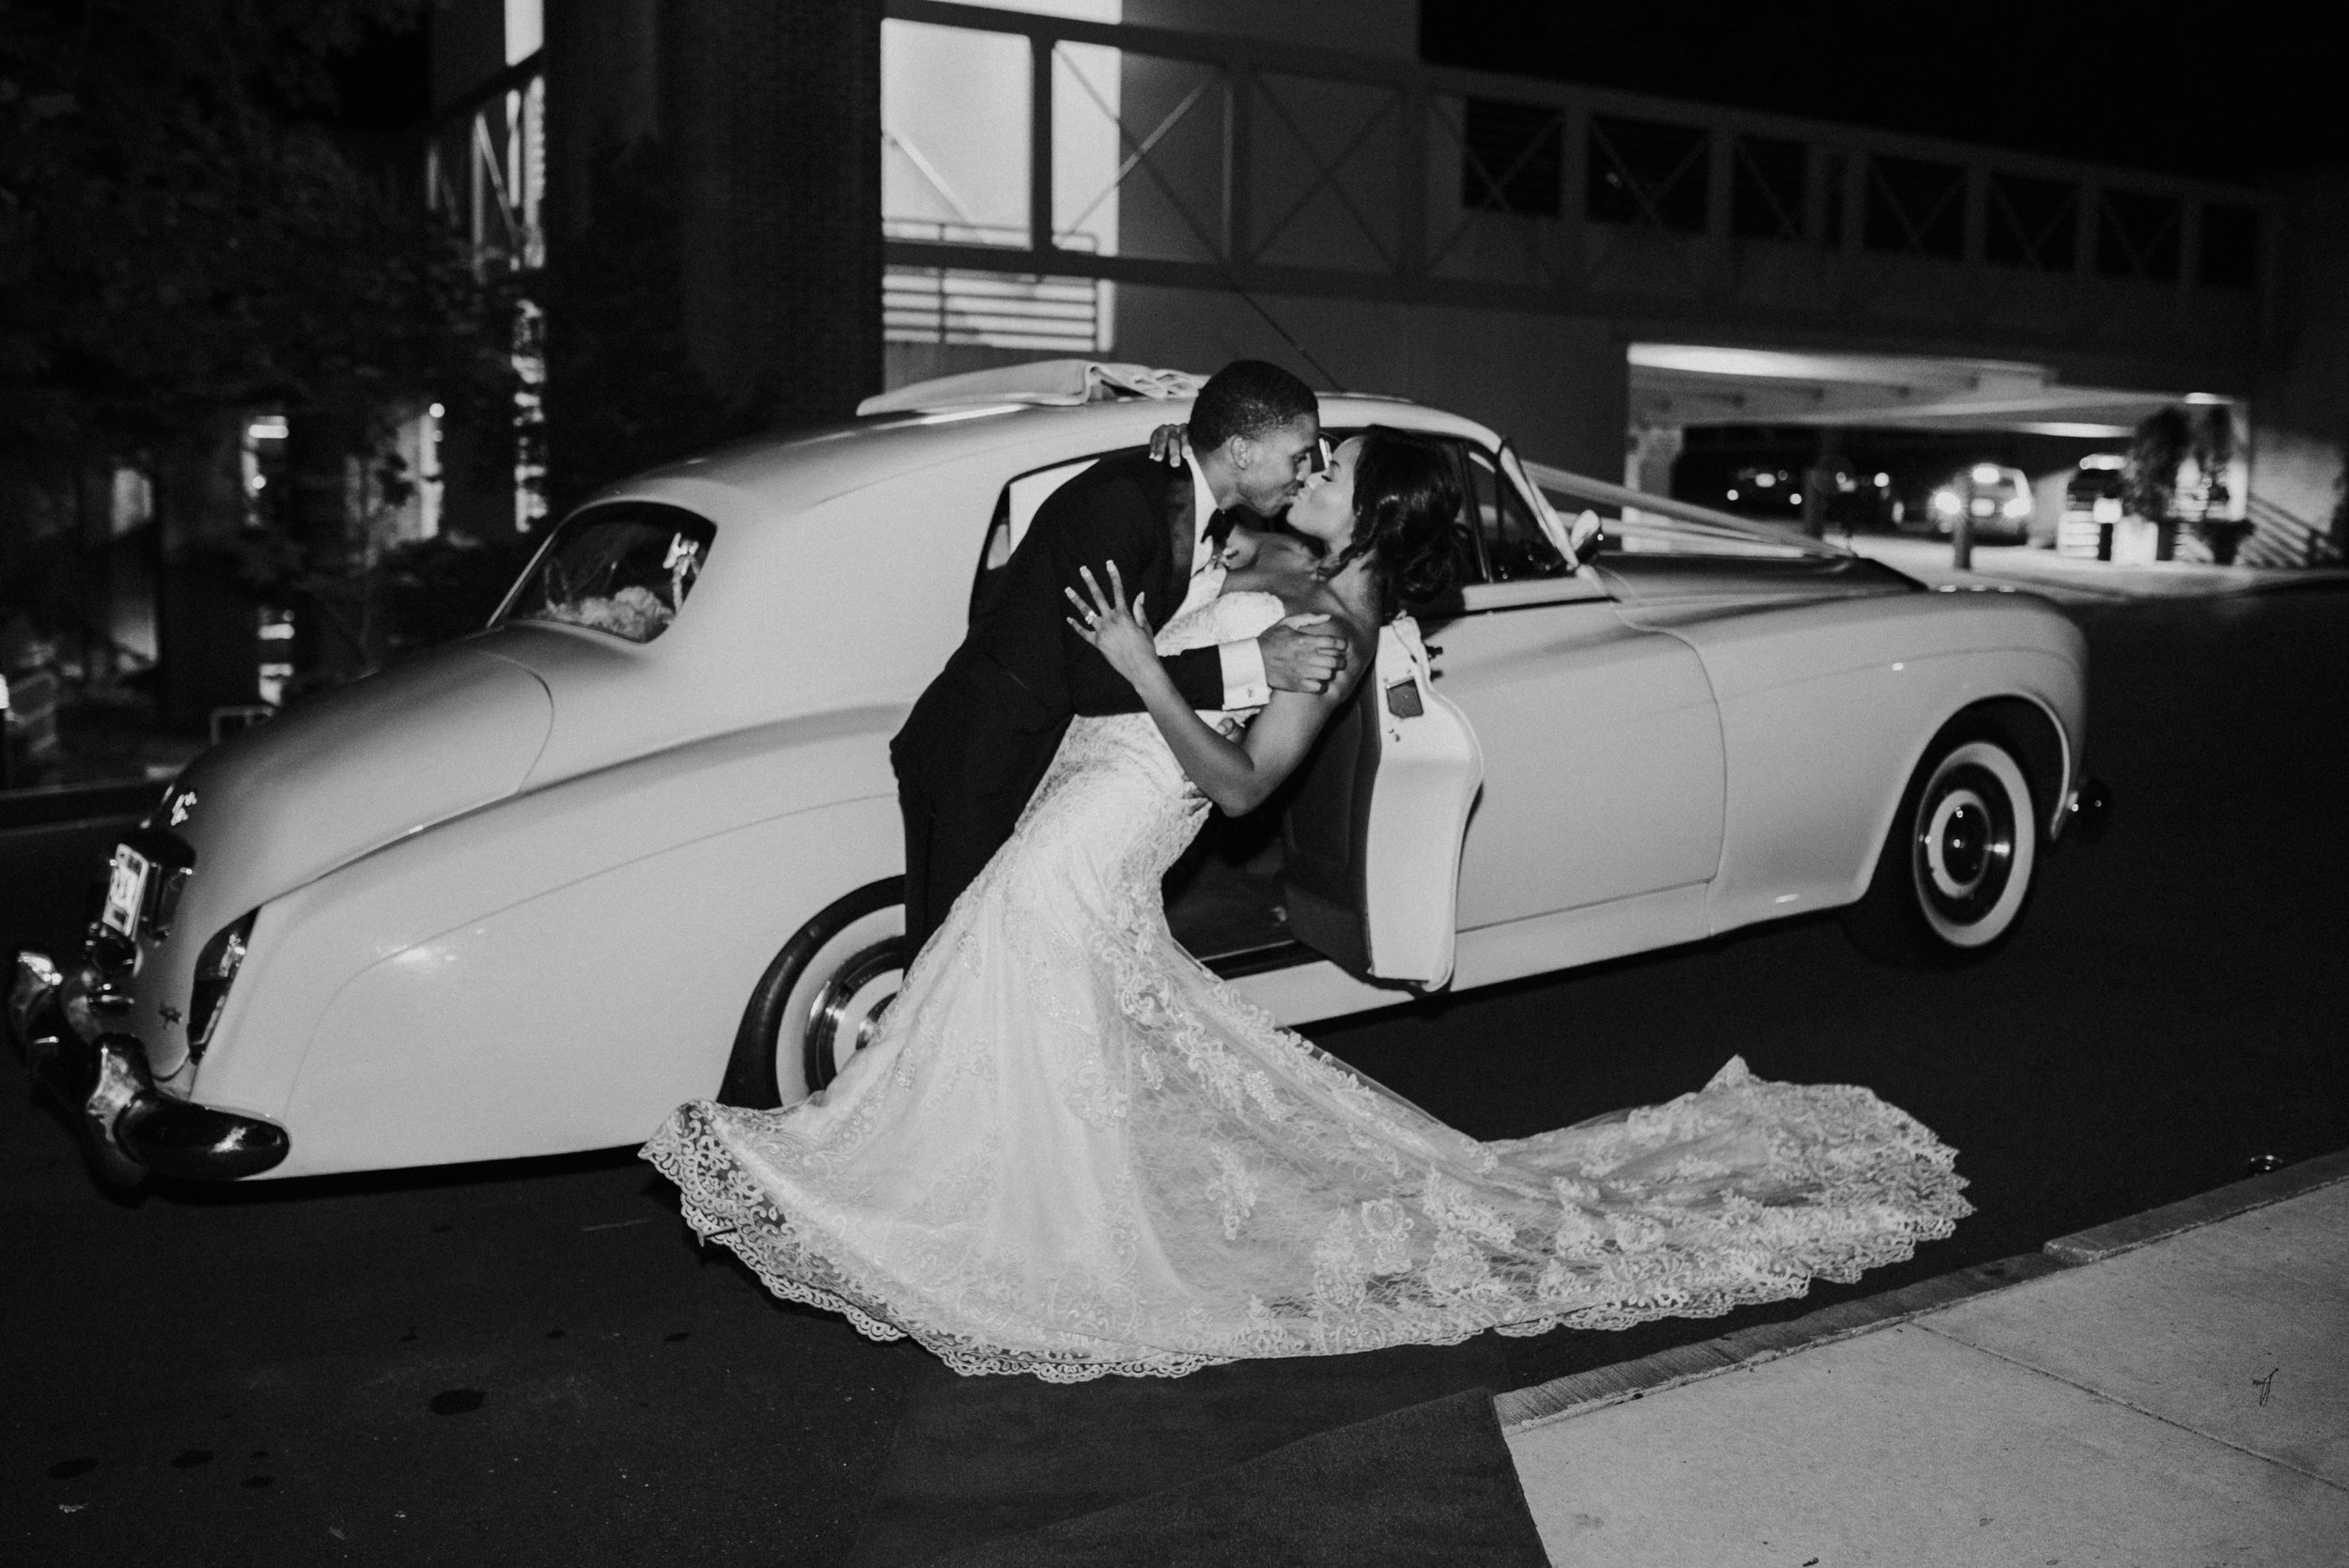 Bride and groom kiss in front of vintage car